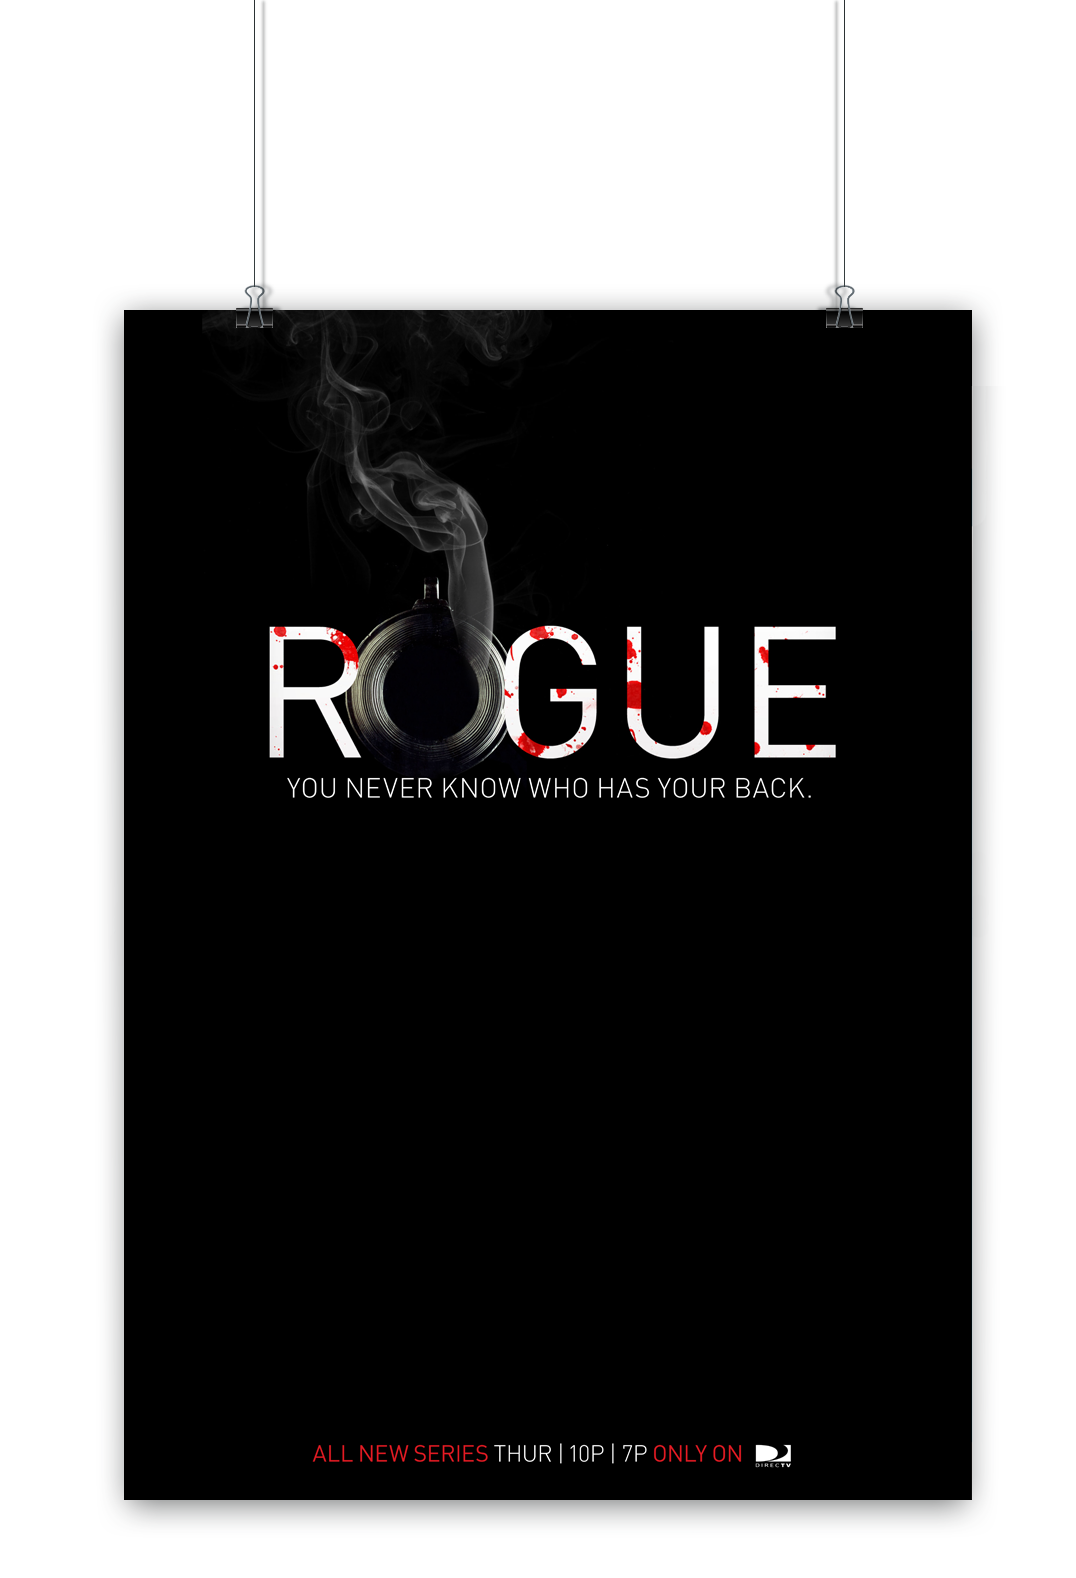 scottgericke_posters_rogue1.png